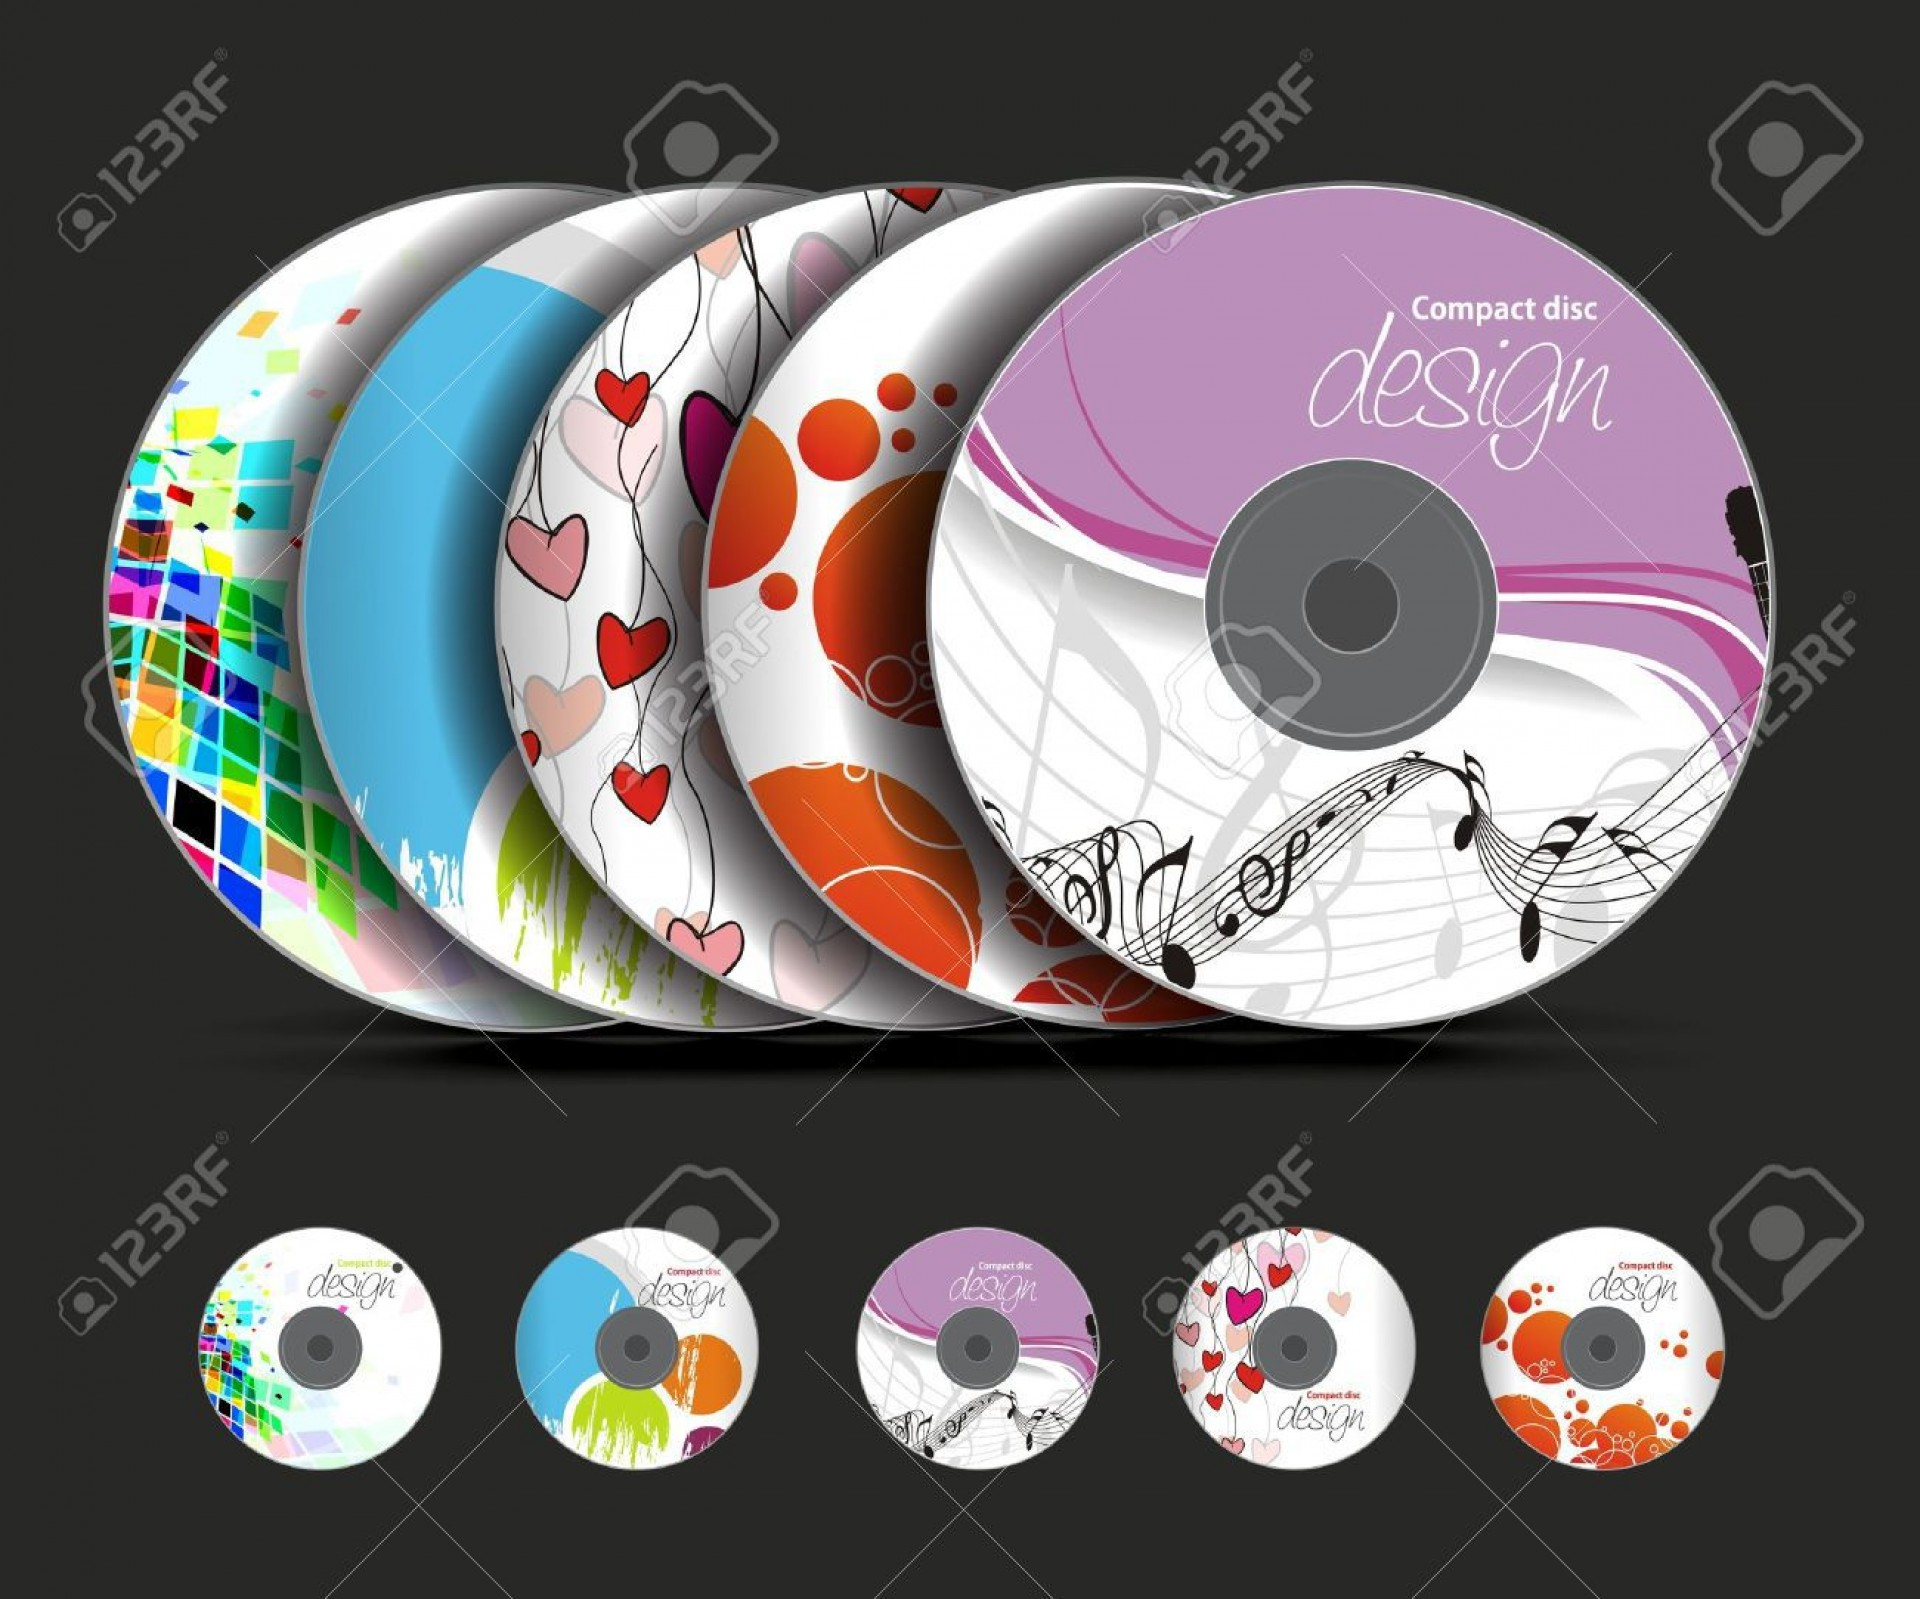 001 Unforgettable Vector Cd Cover Design Template Free Inspiration 1920